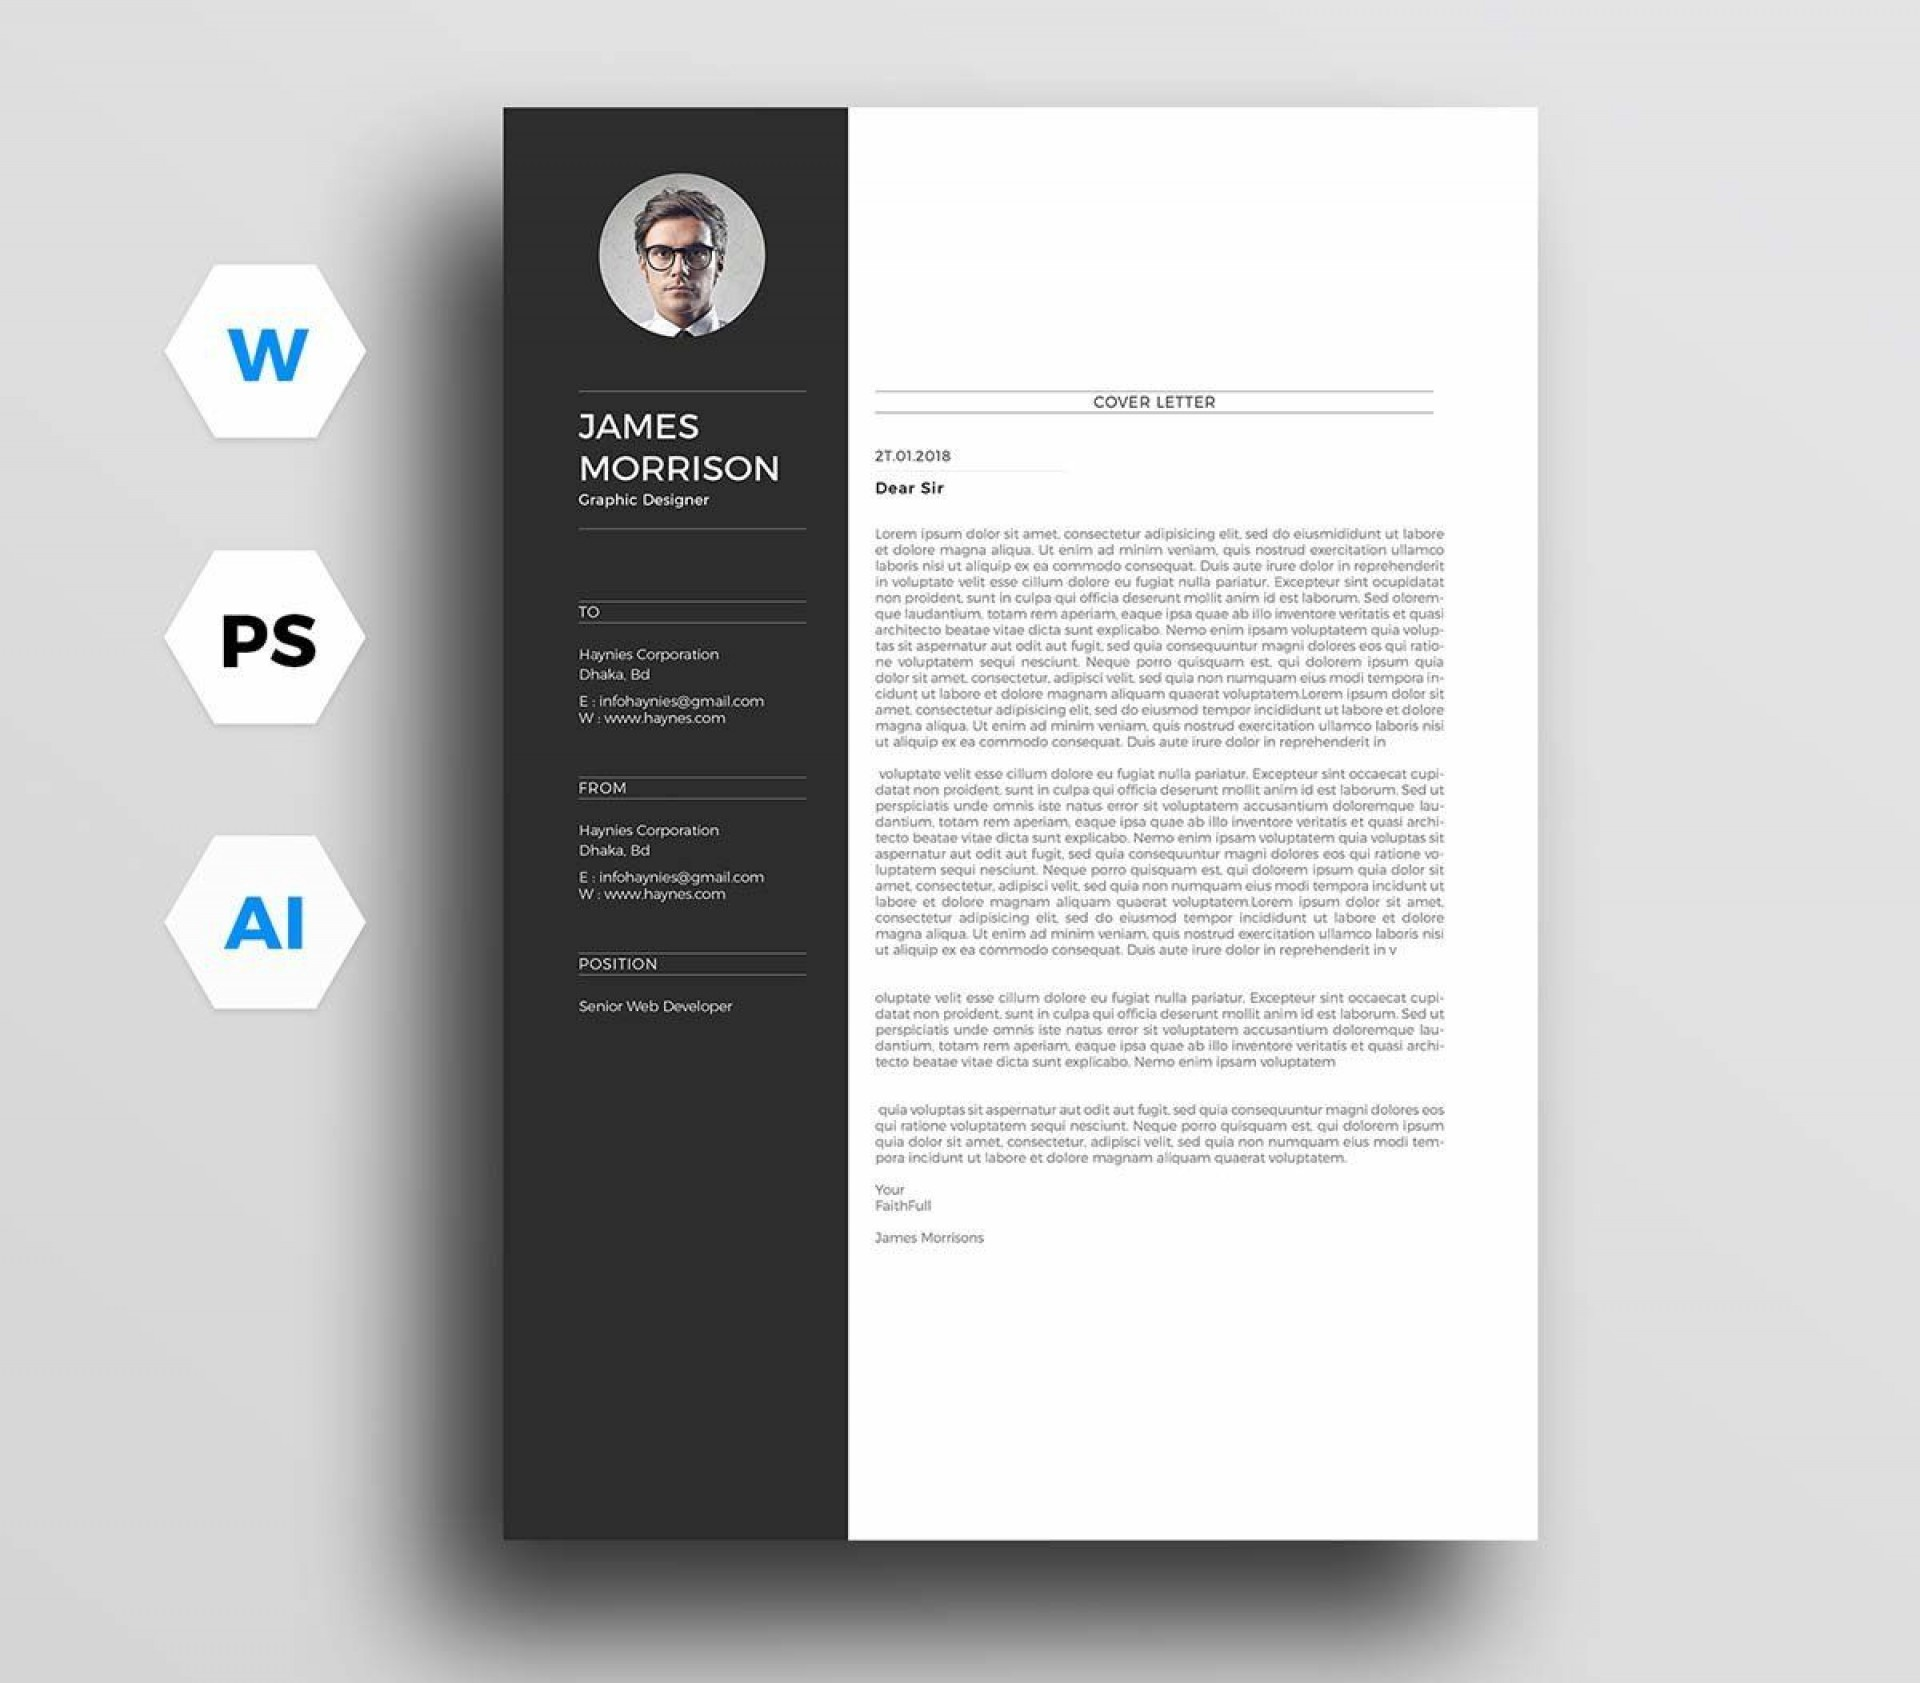 001 Striking Resume Cover Letter Template Docx Example 1920